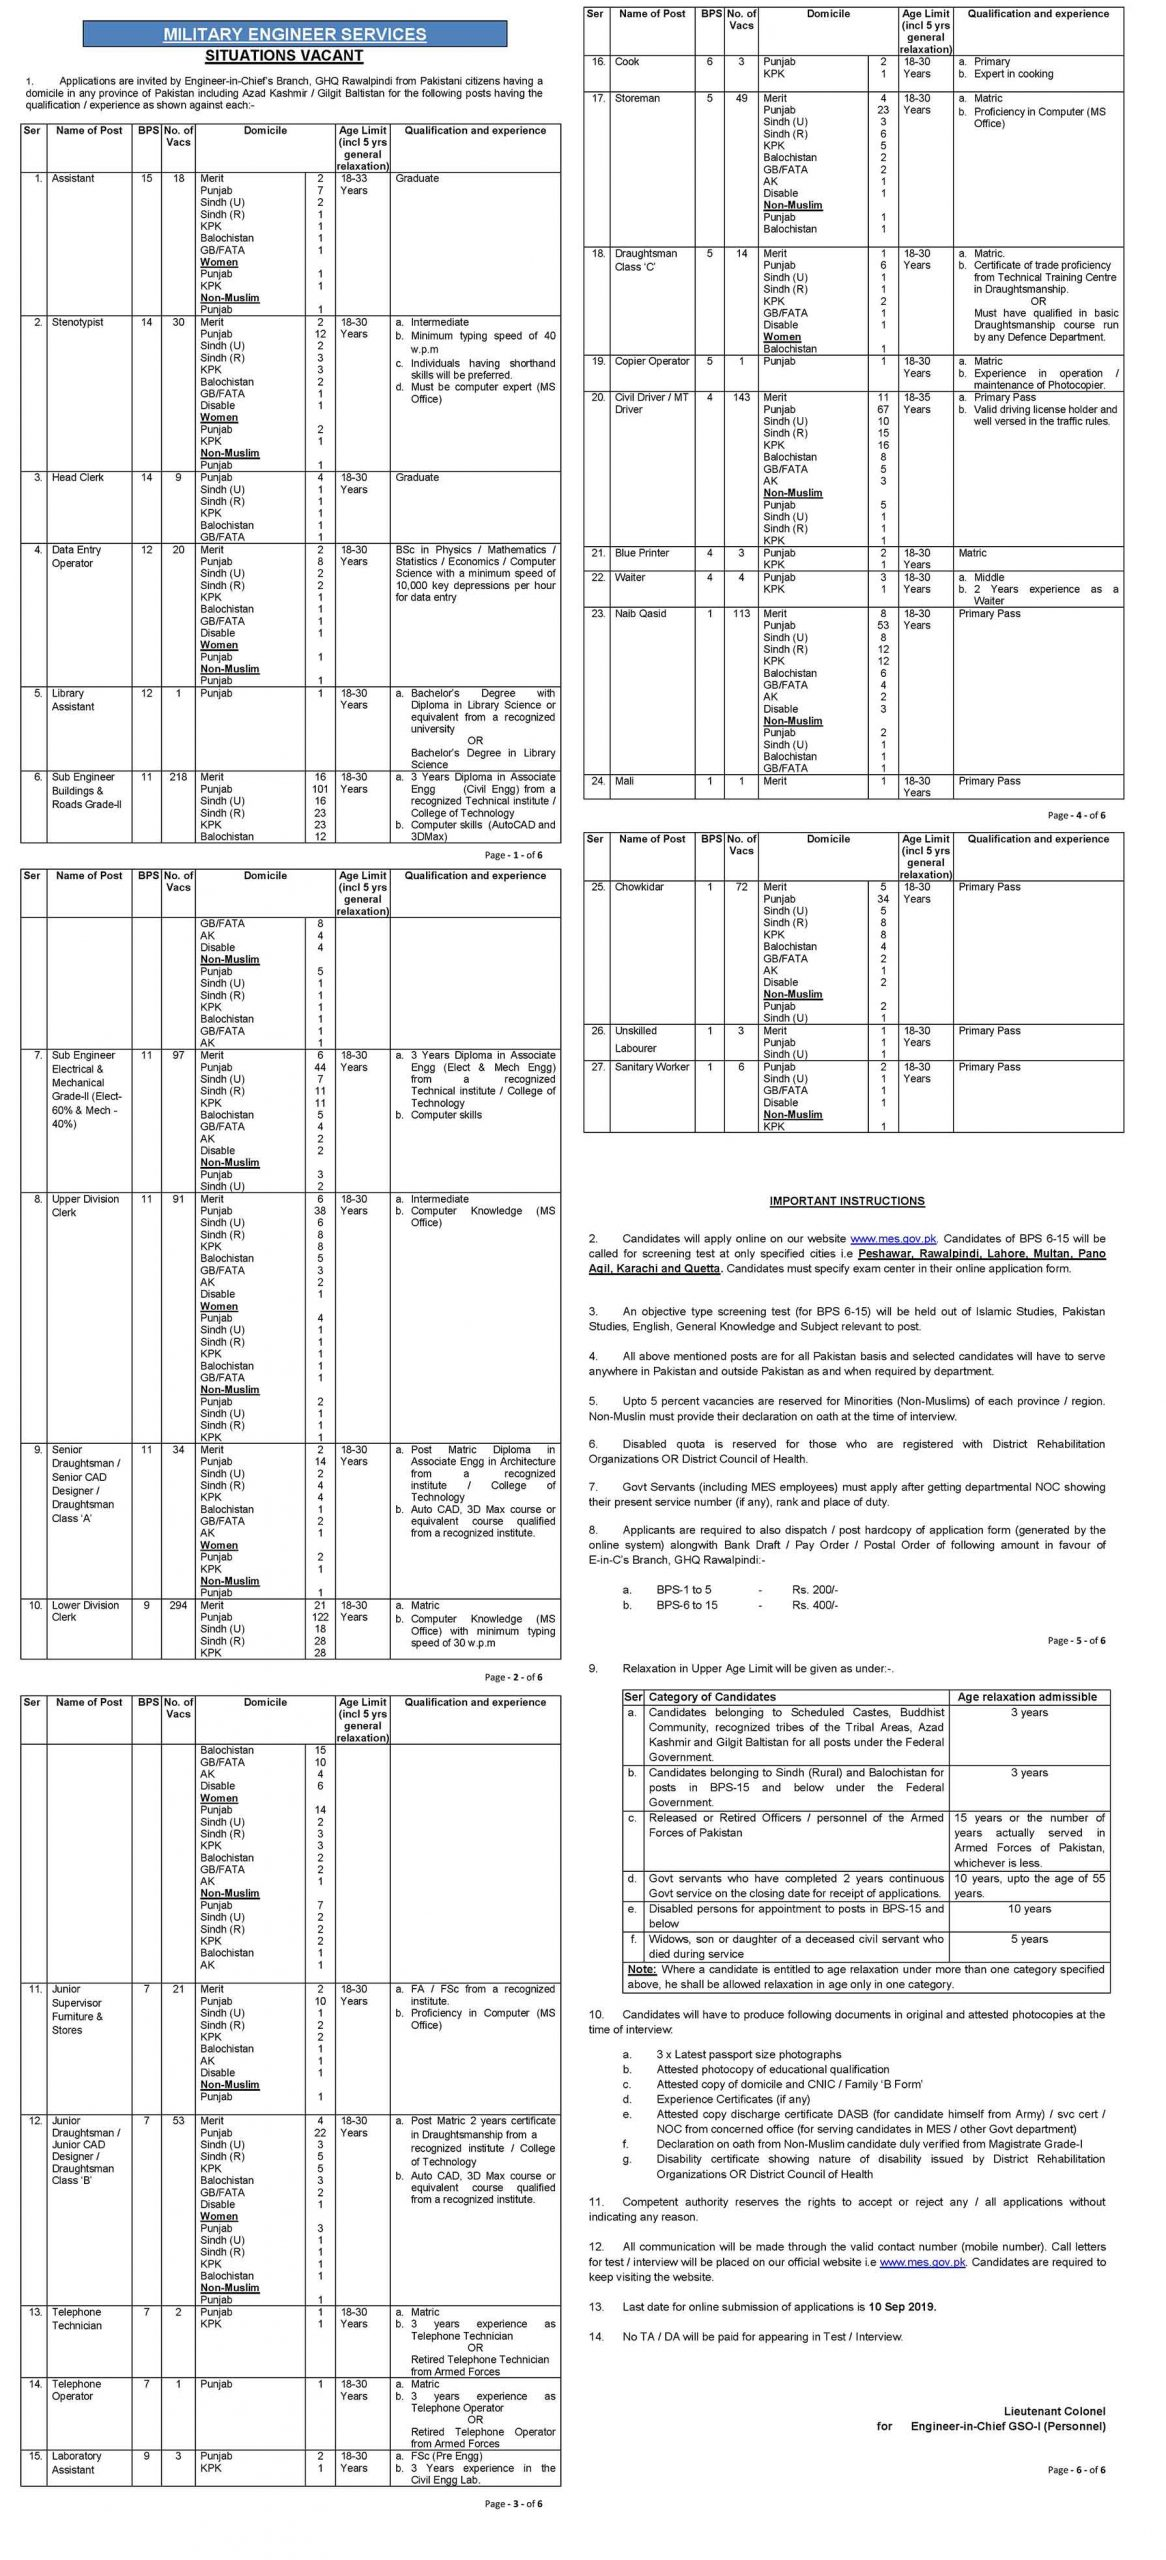 Military Engineer Services Jobs MES Result